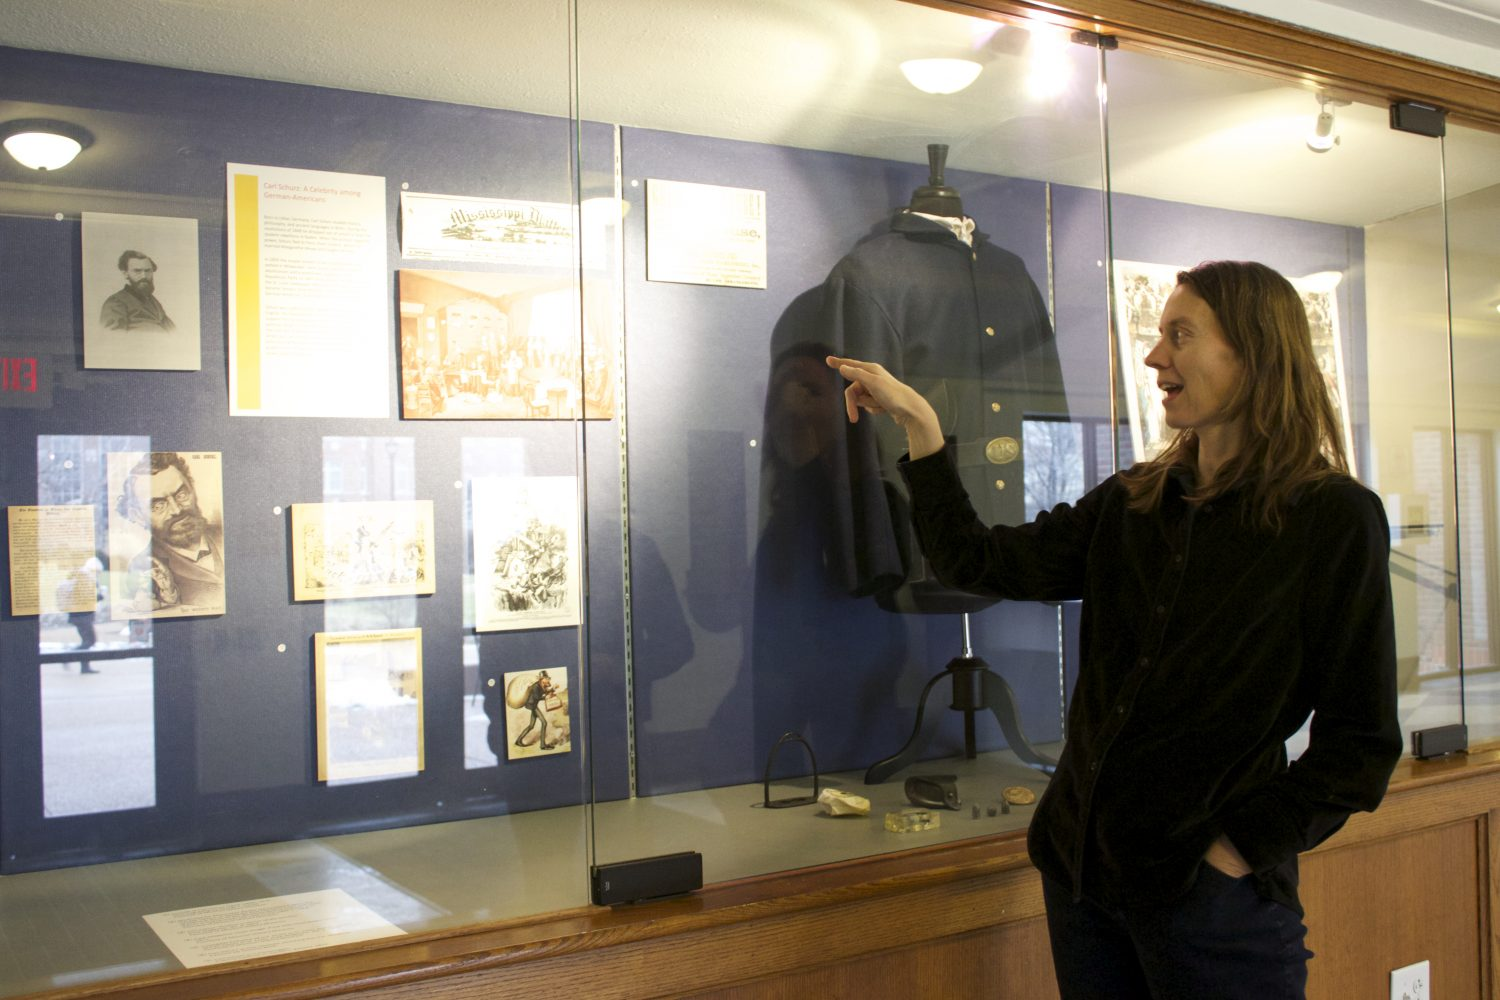 Exhibit+features+early+German+abolitionists